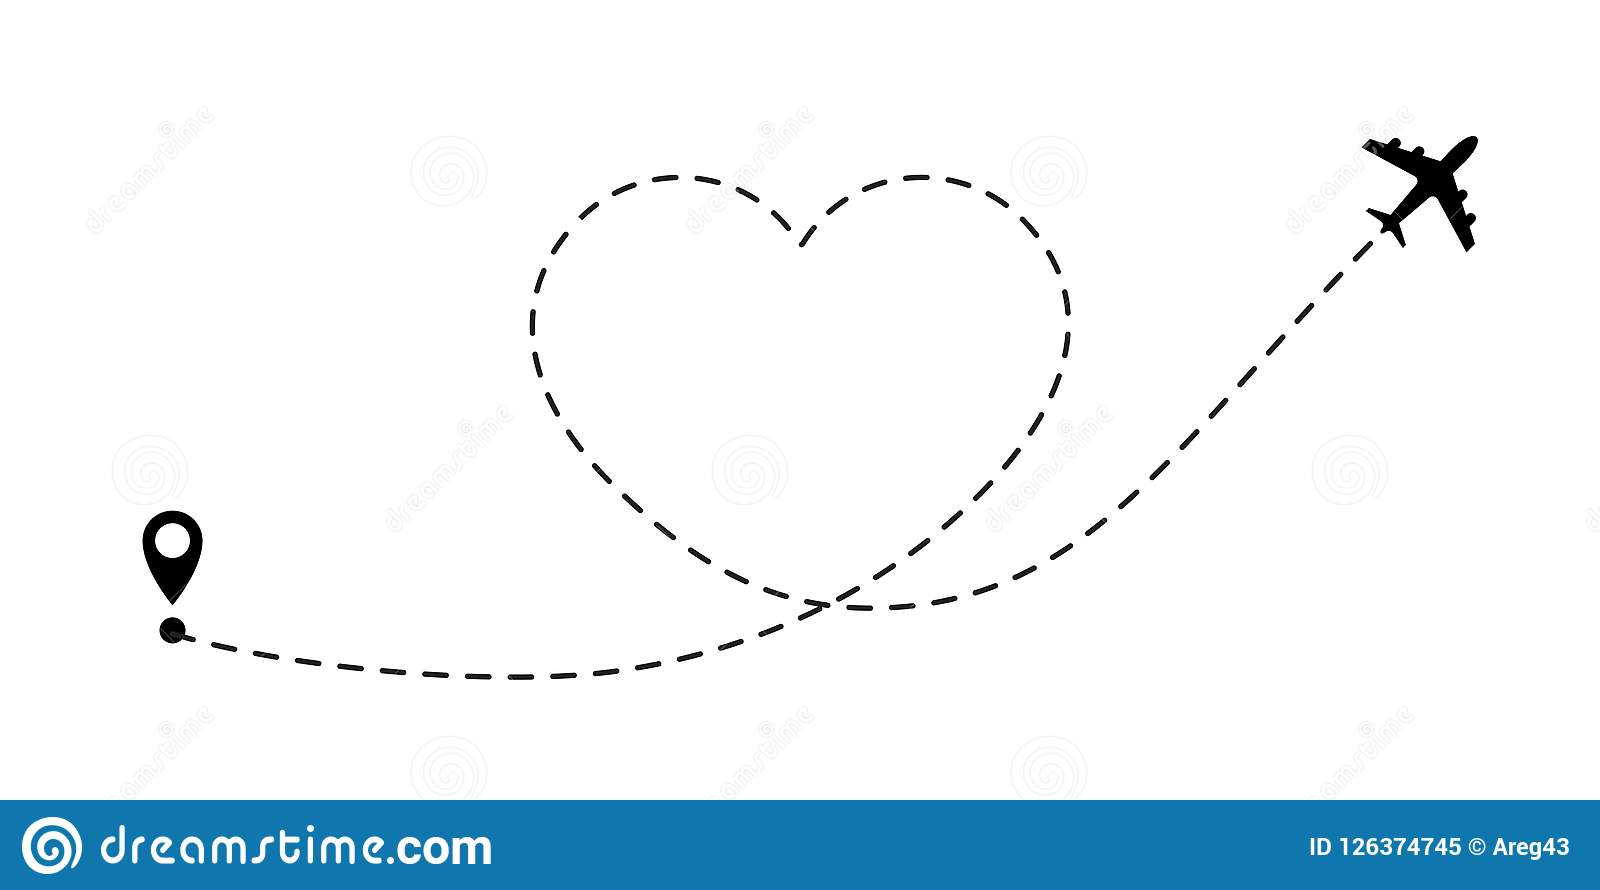 Love travel route. Airplane line path vector icon of air plane flight route travel